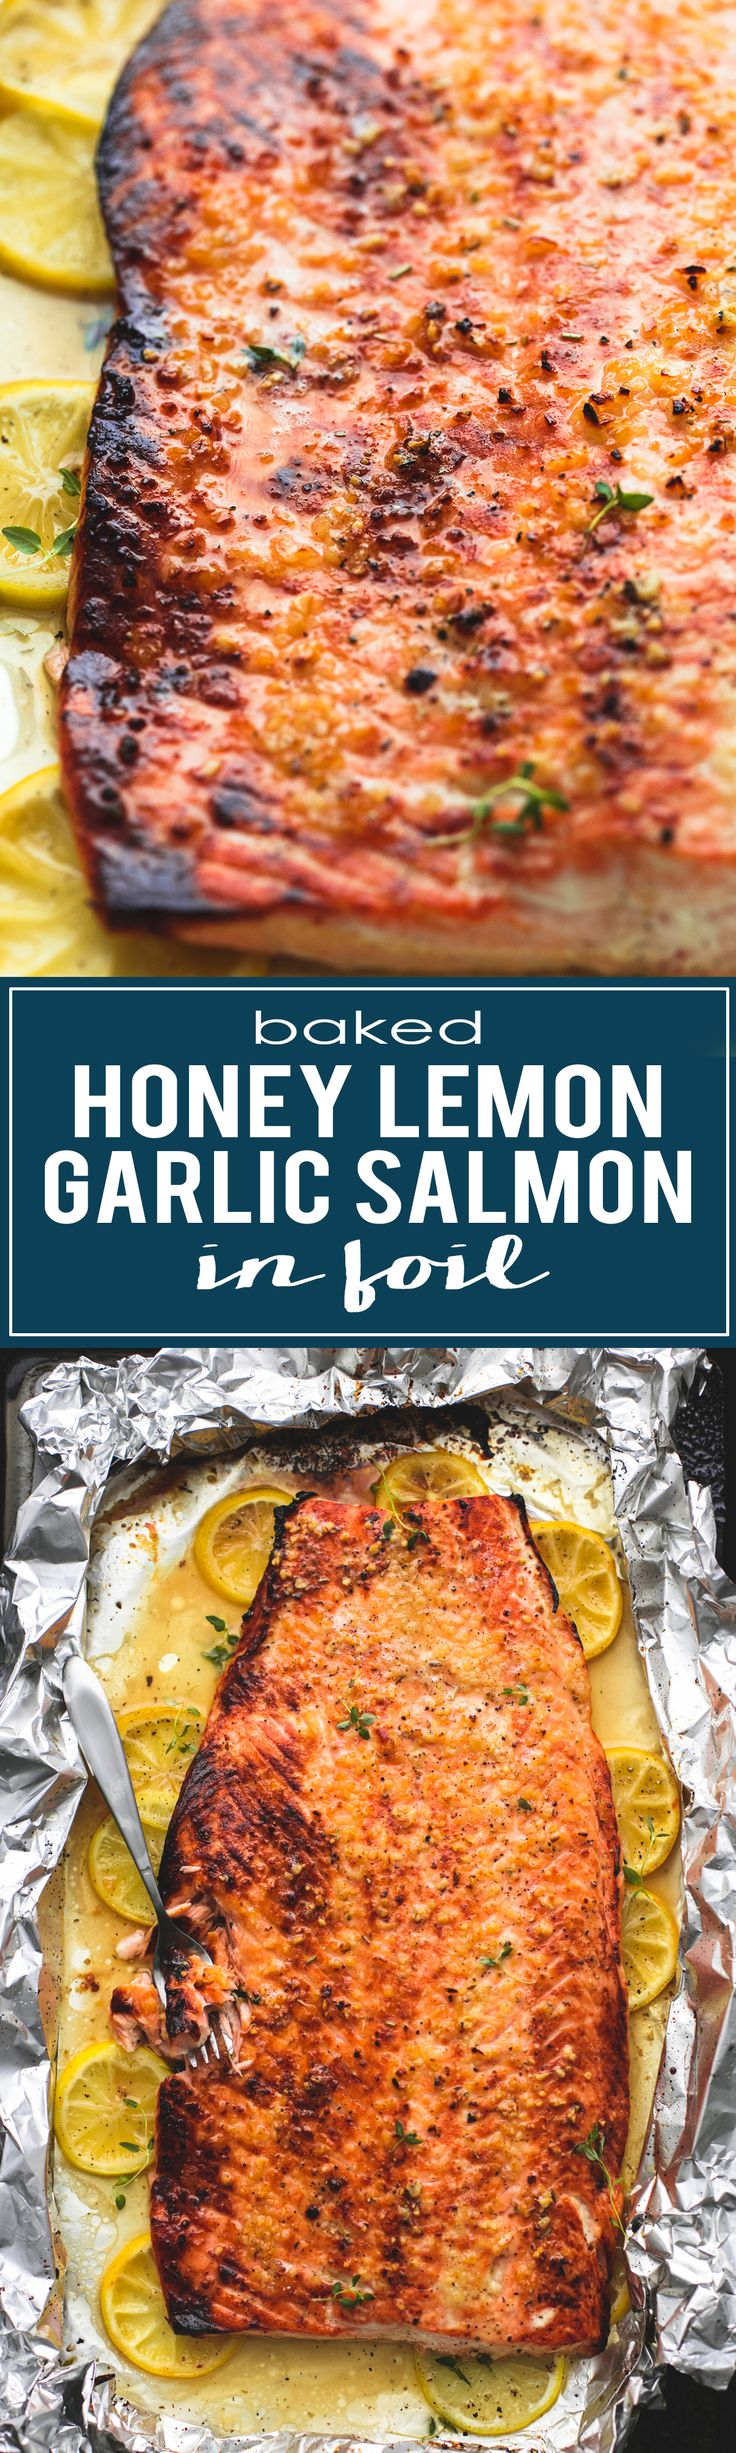 Easy and healthy Baked Honey Lemon Garlic Salmon in Foil | lecremedelacrumb.com